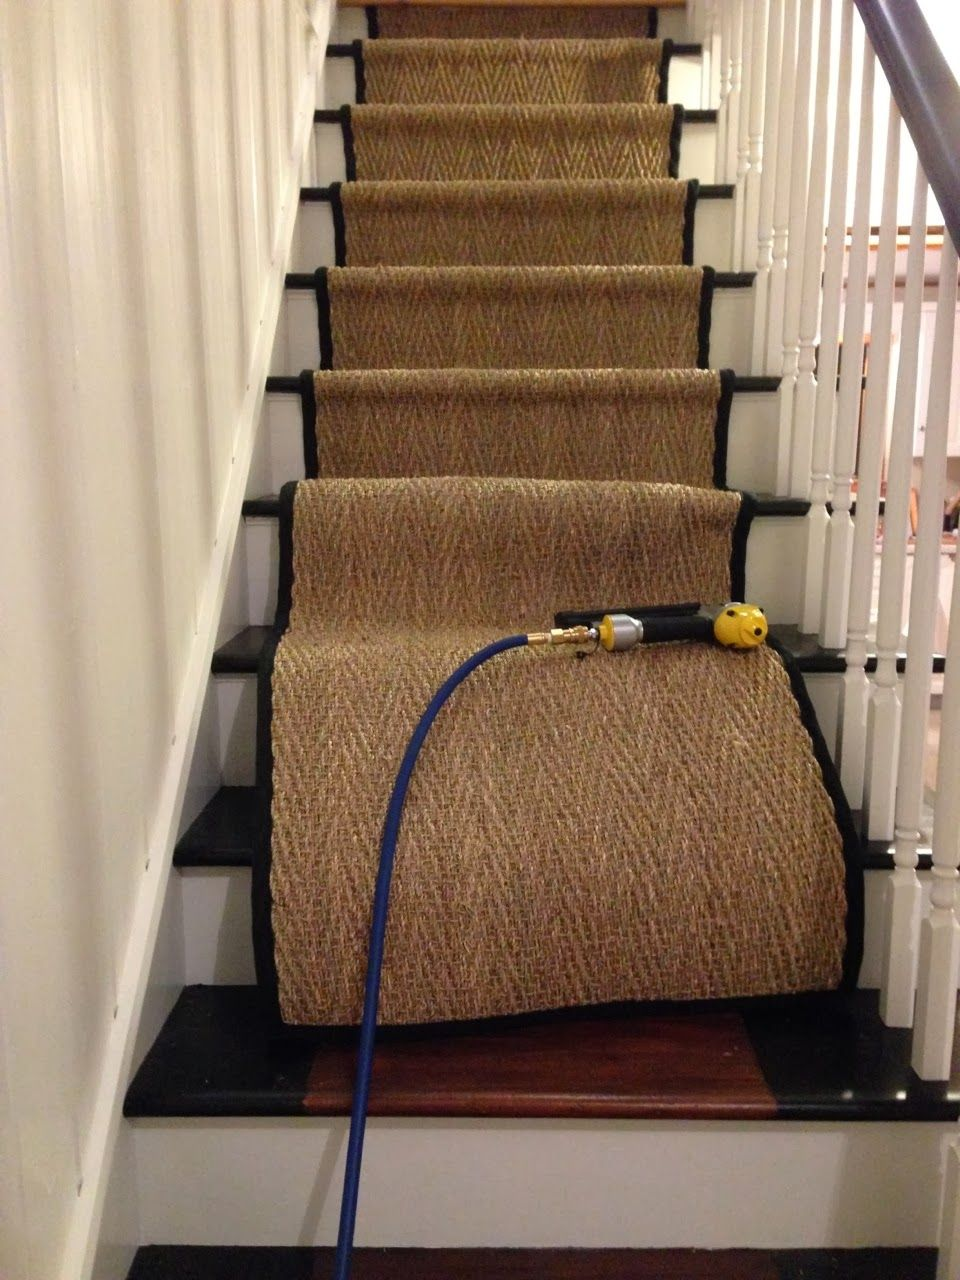 Best Installing Seagrass Safavieh Stair Runner Google Search 640 x 480